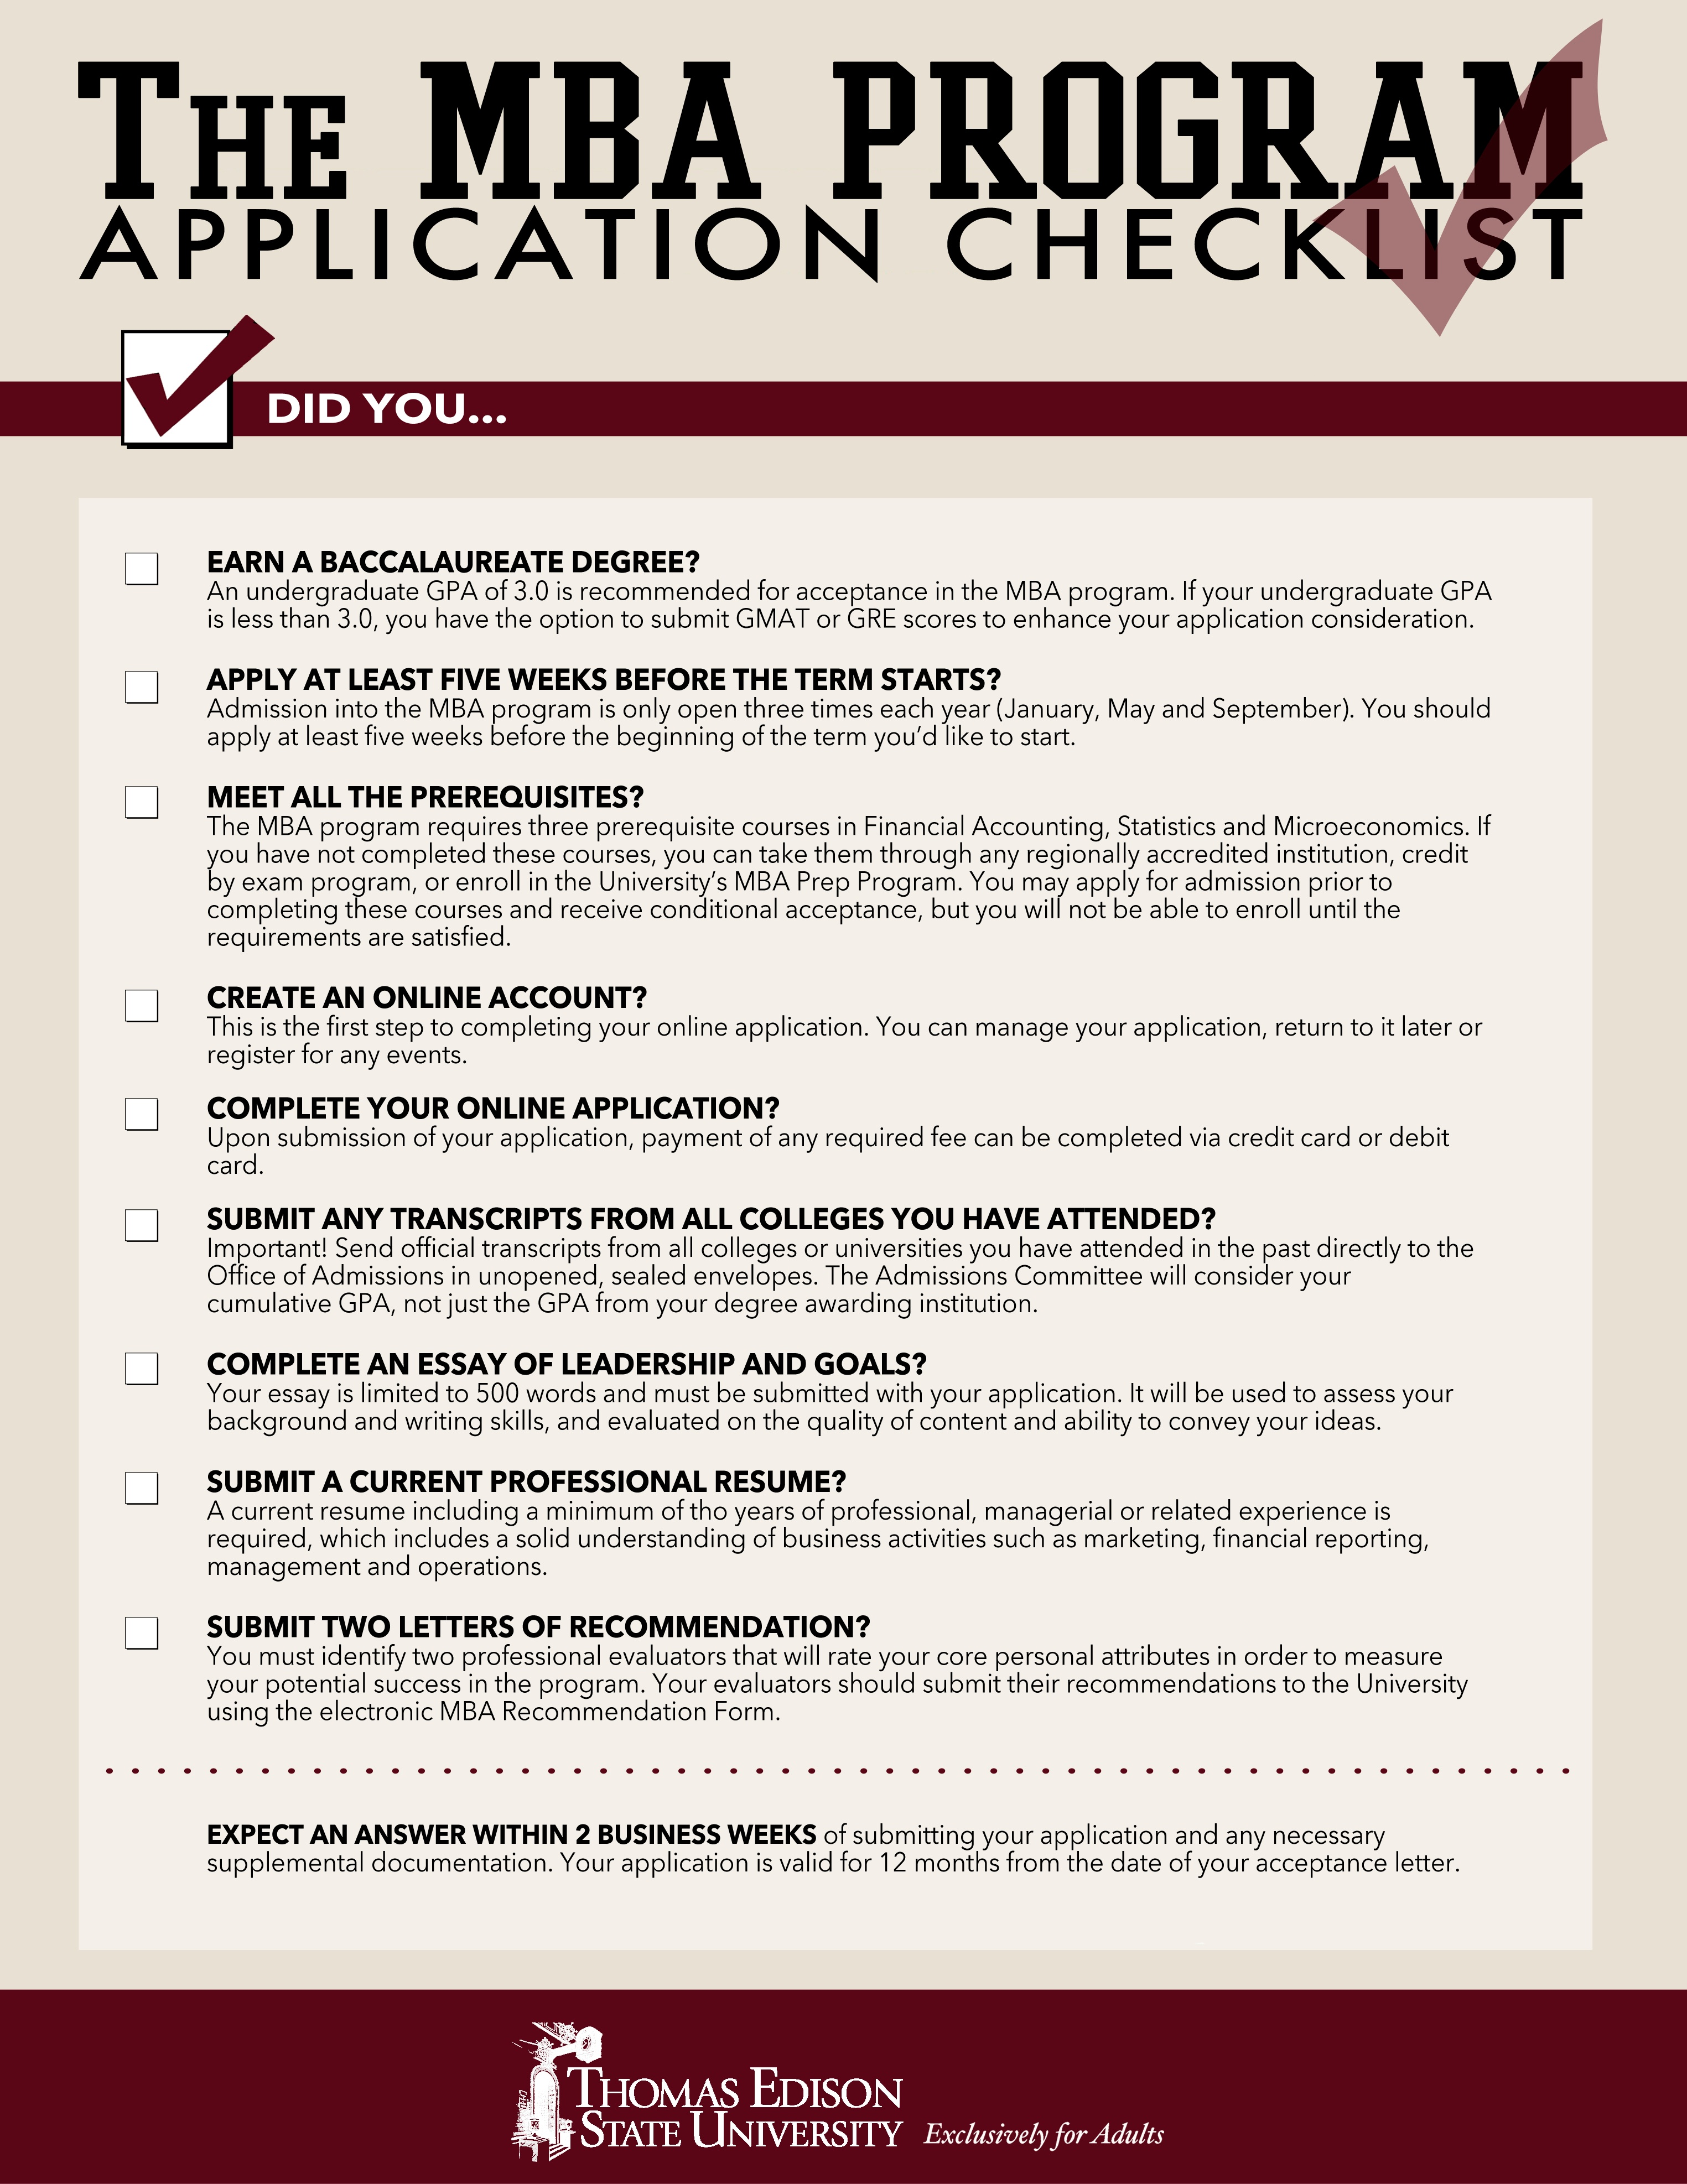 MBA Application Checklist: 9 Things You Must Do Before You Hit Submit